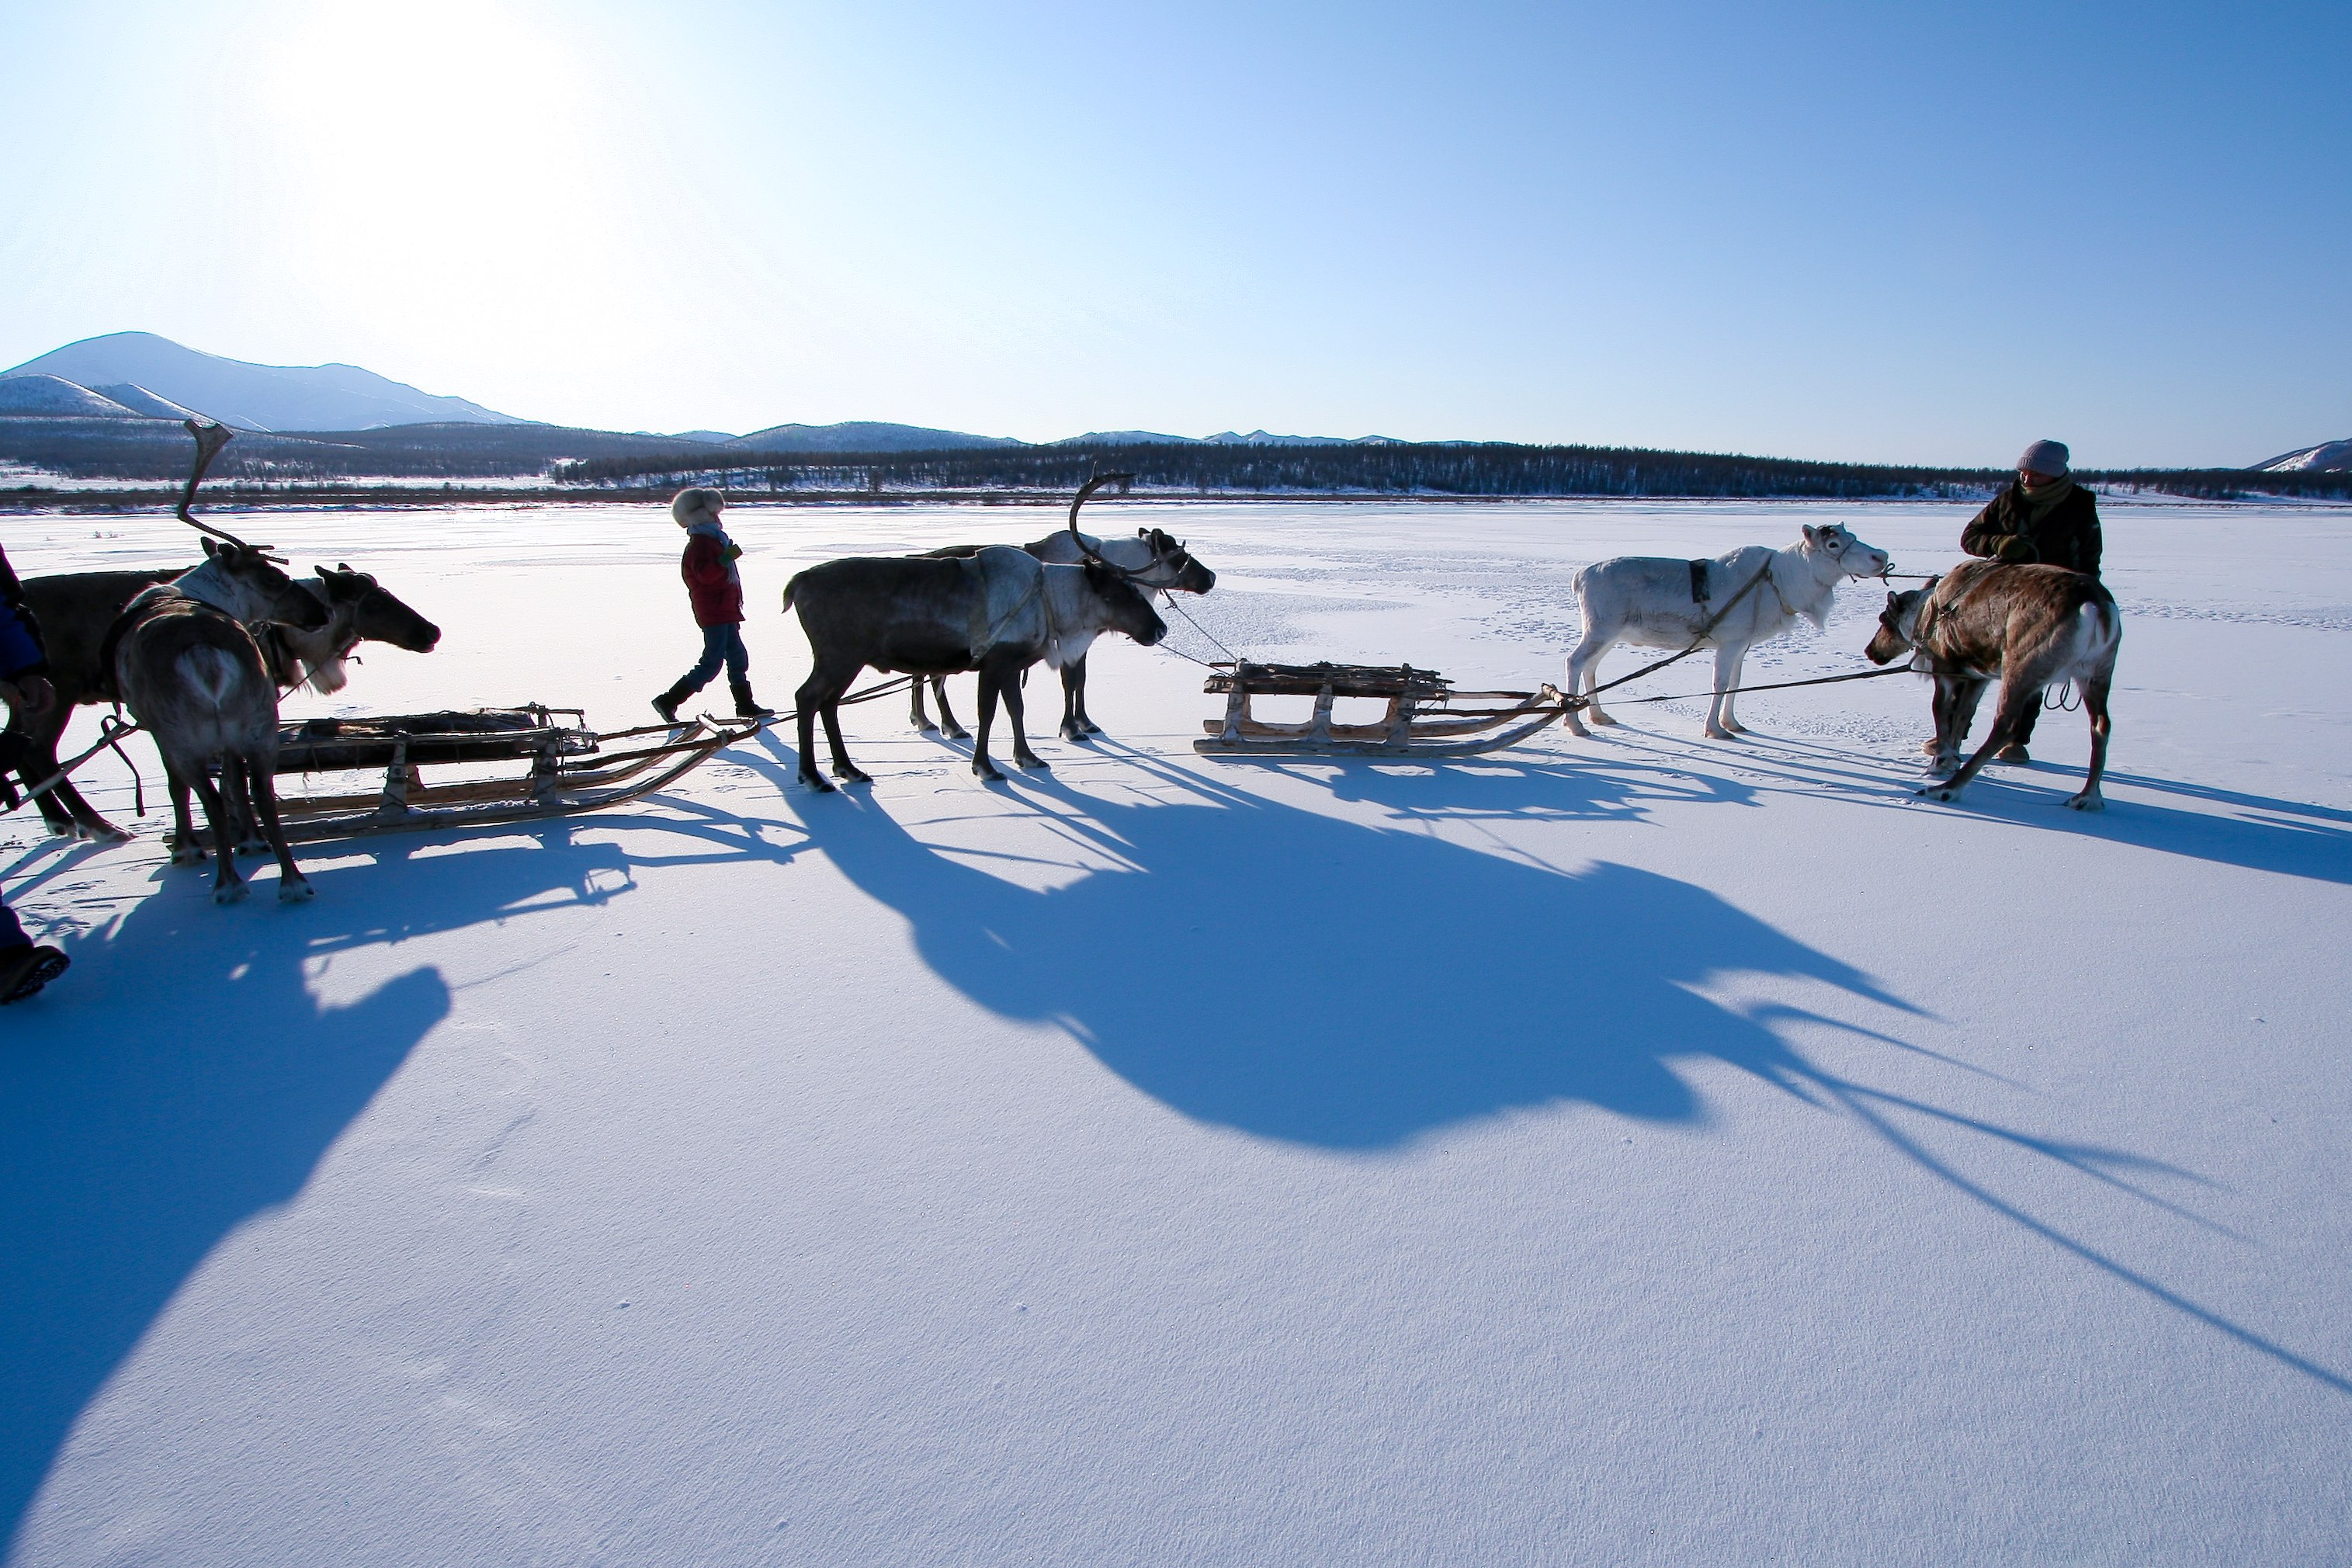 A brother and sister travelling by reindeer sled